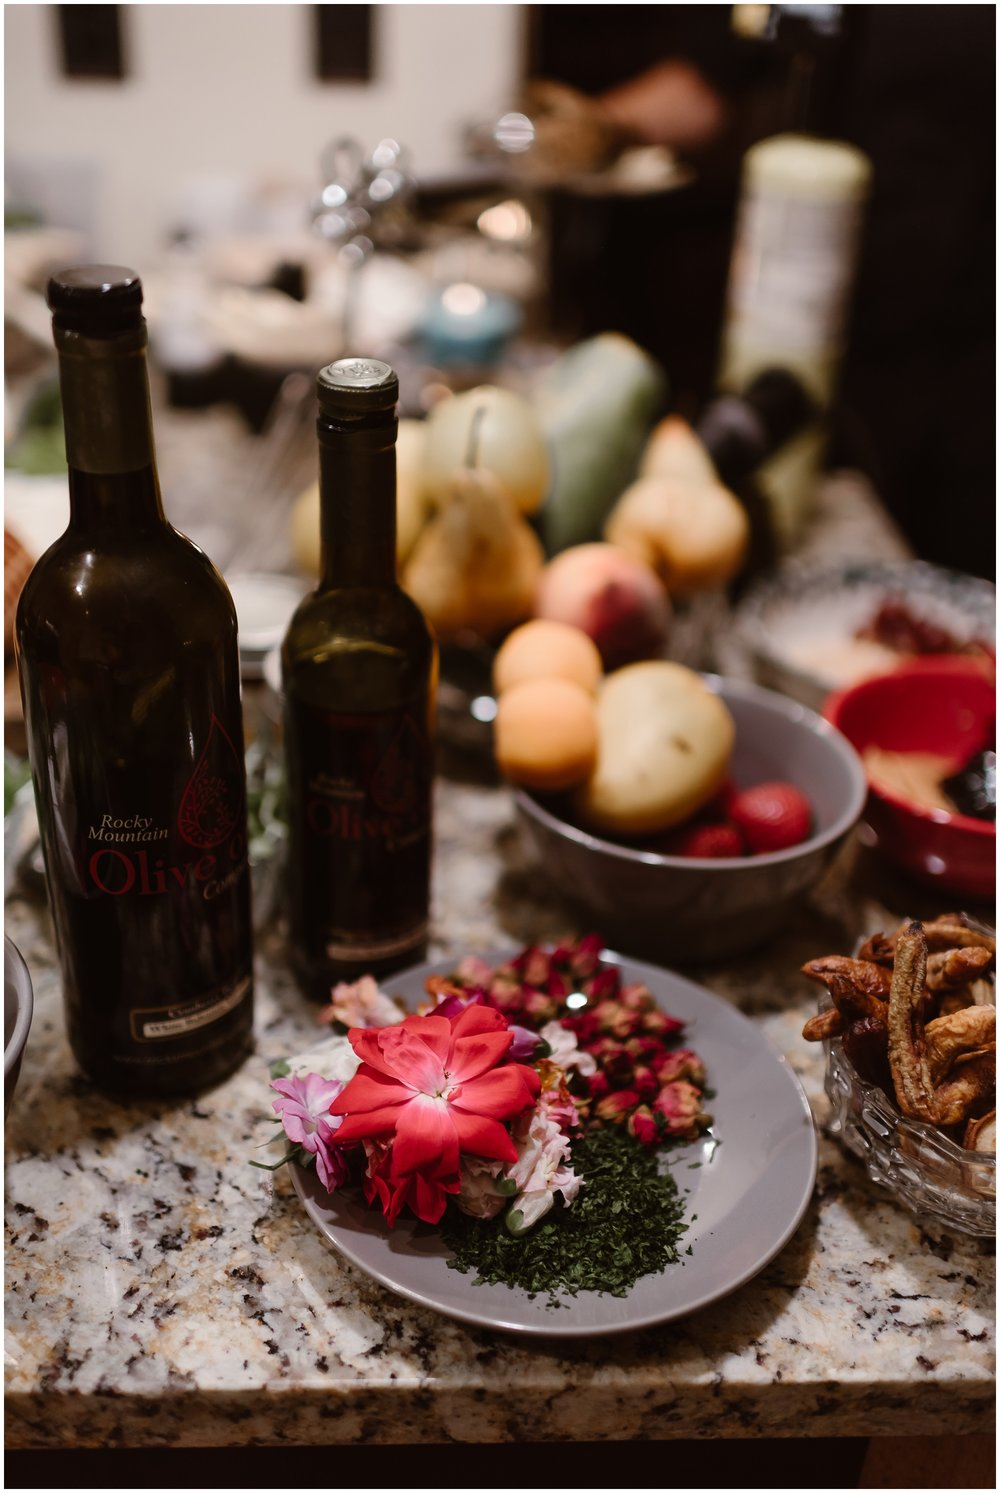 A beautiful arrangement of garnishes sits on a plate on top of a marble counter top. These spices, garnishes, and nearby bottles of wine are all a part of the gourmet dinner that the bride and groom wanted as part of their small simple wedding. For their party after eloping, they hired two private chefs.